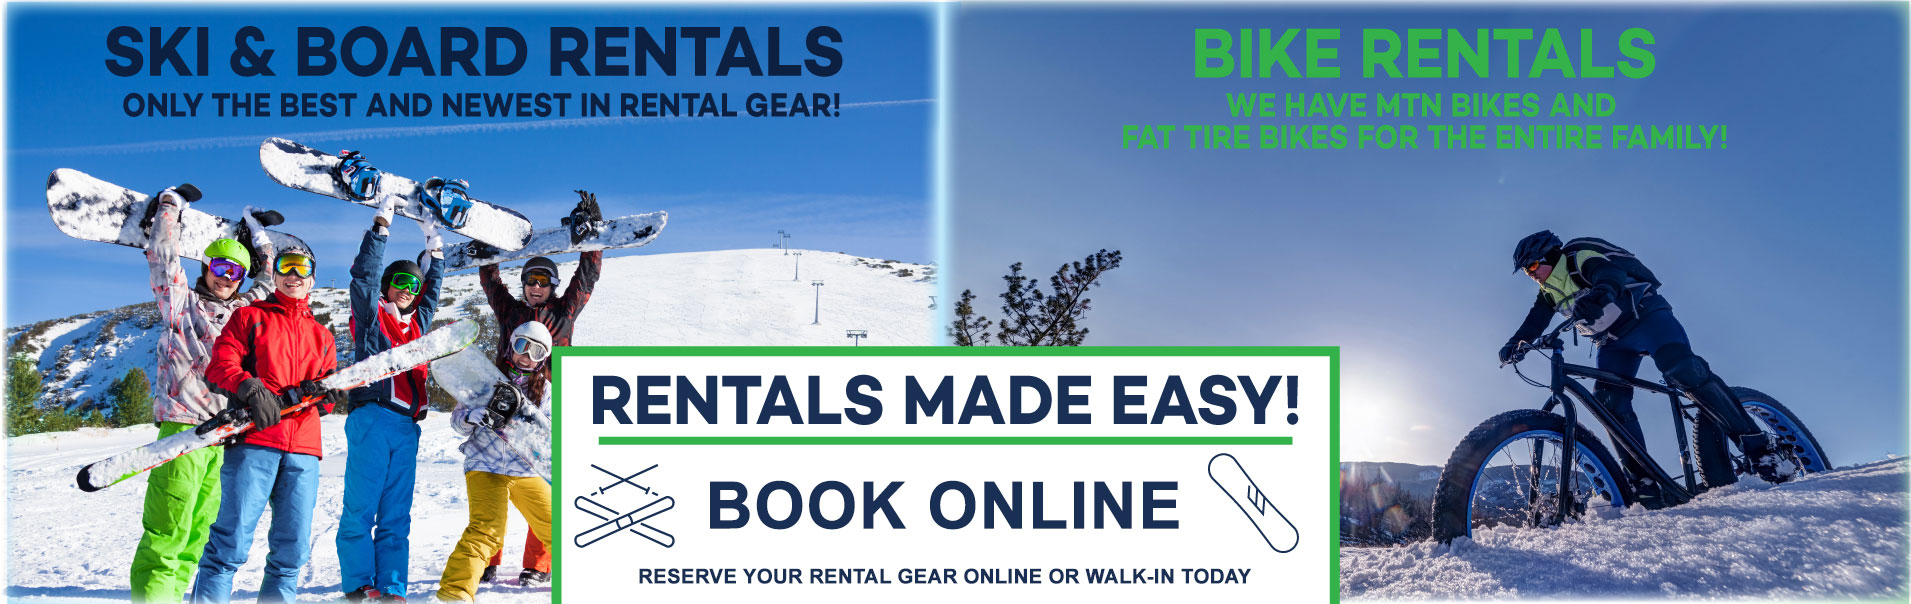 Ski & Board Rentals | Bike Rentals | Book Online or Walk-In Today